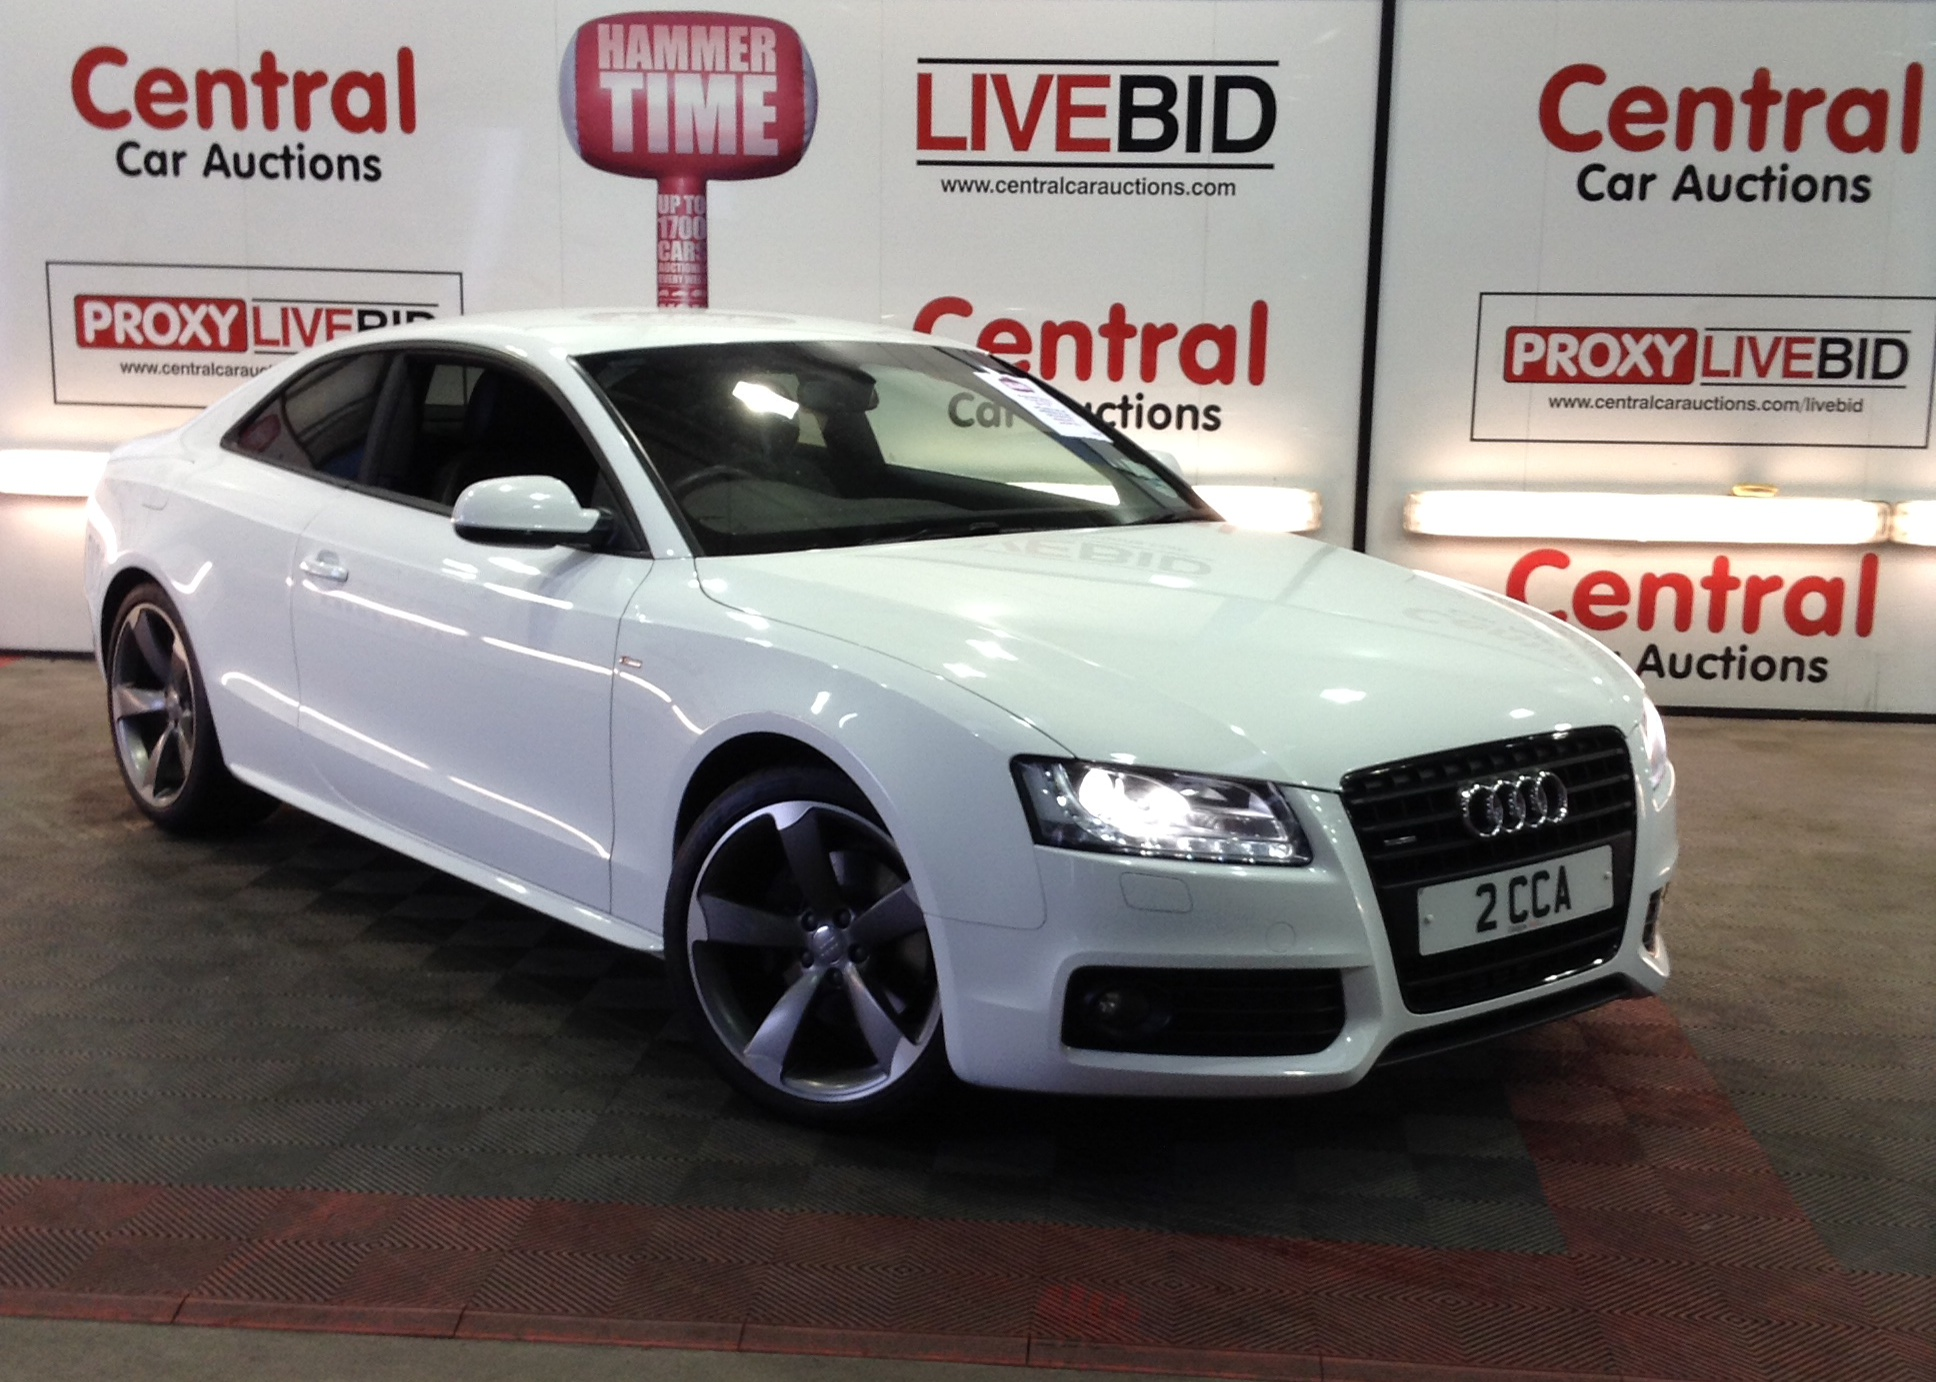 Audi A Coupe Tdi Quattro Central Car Auctions - Audi car auctions